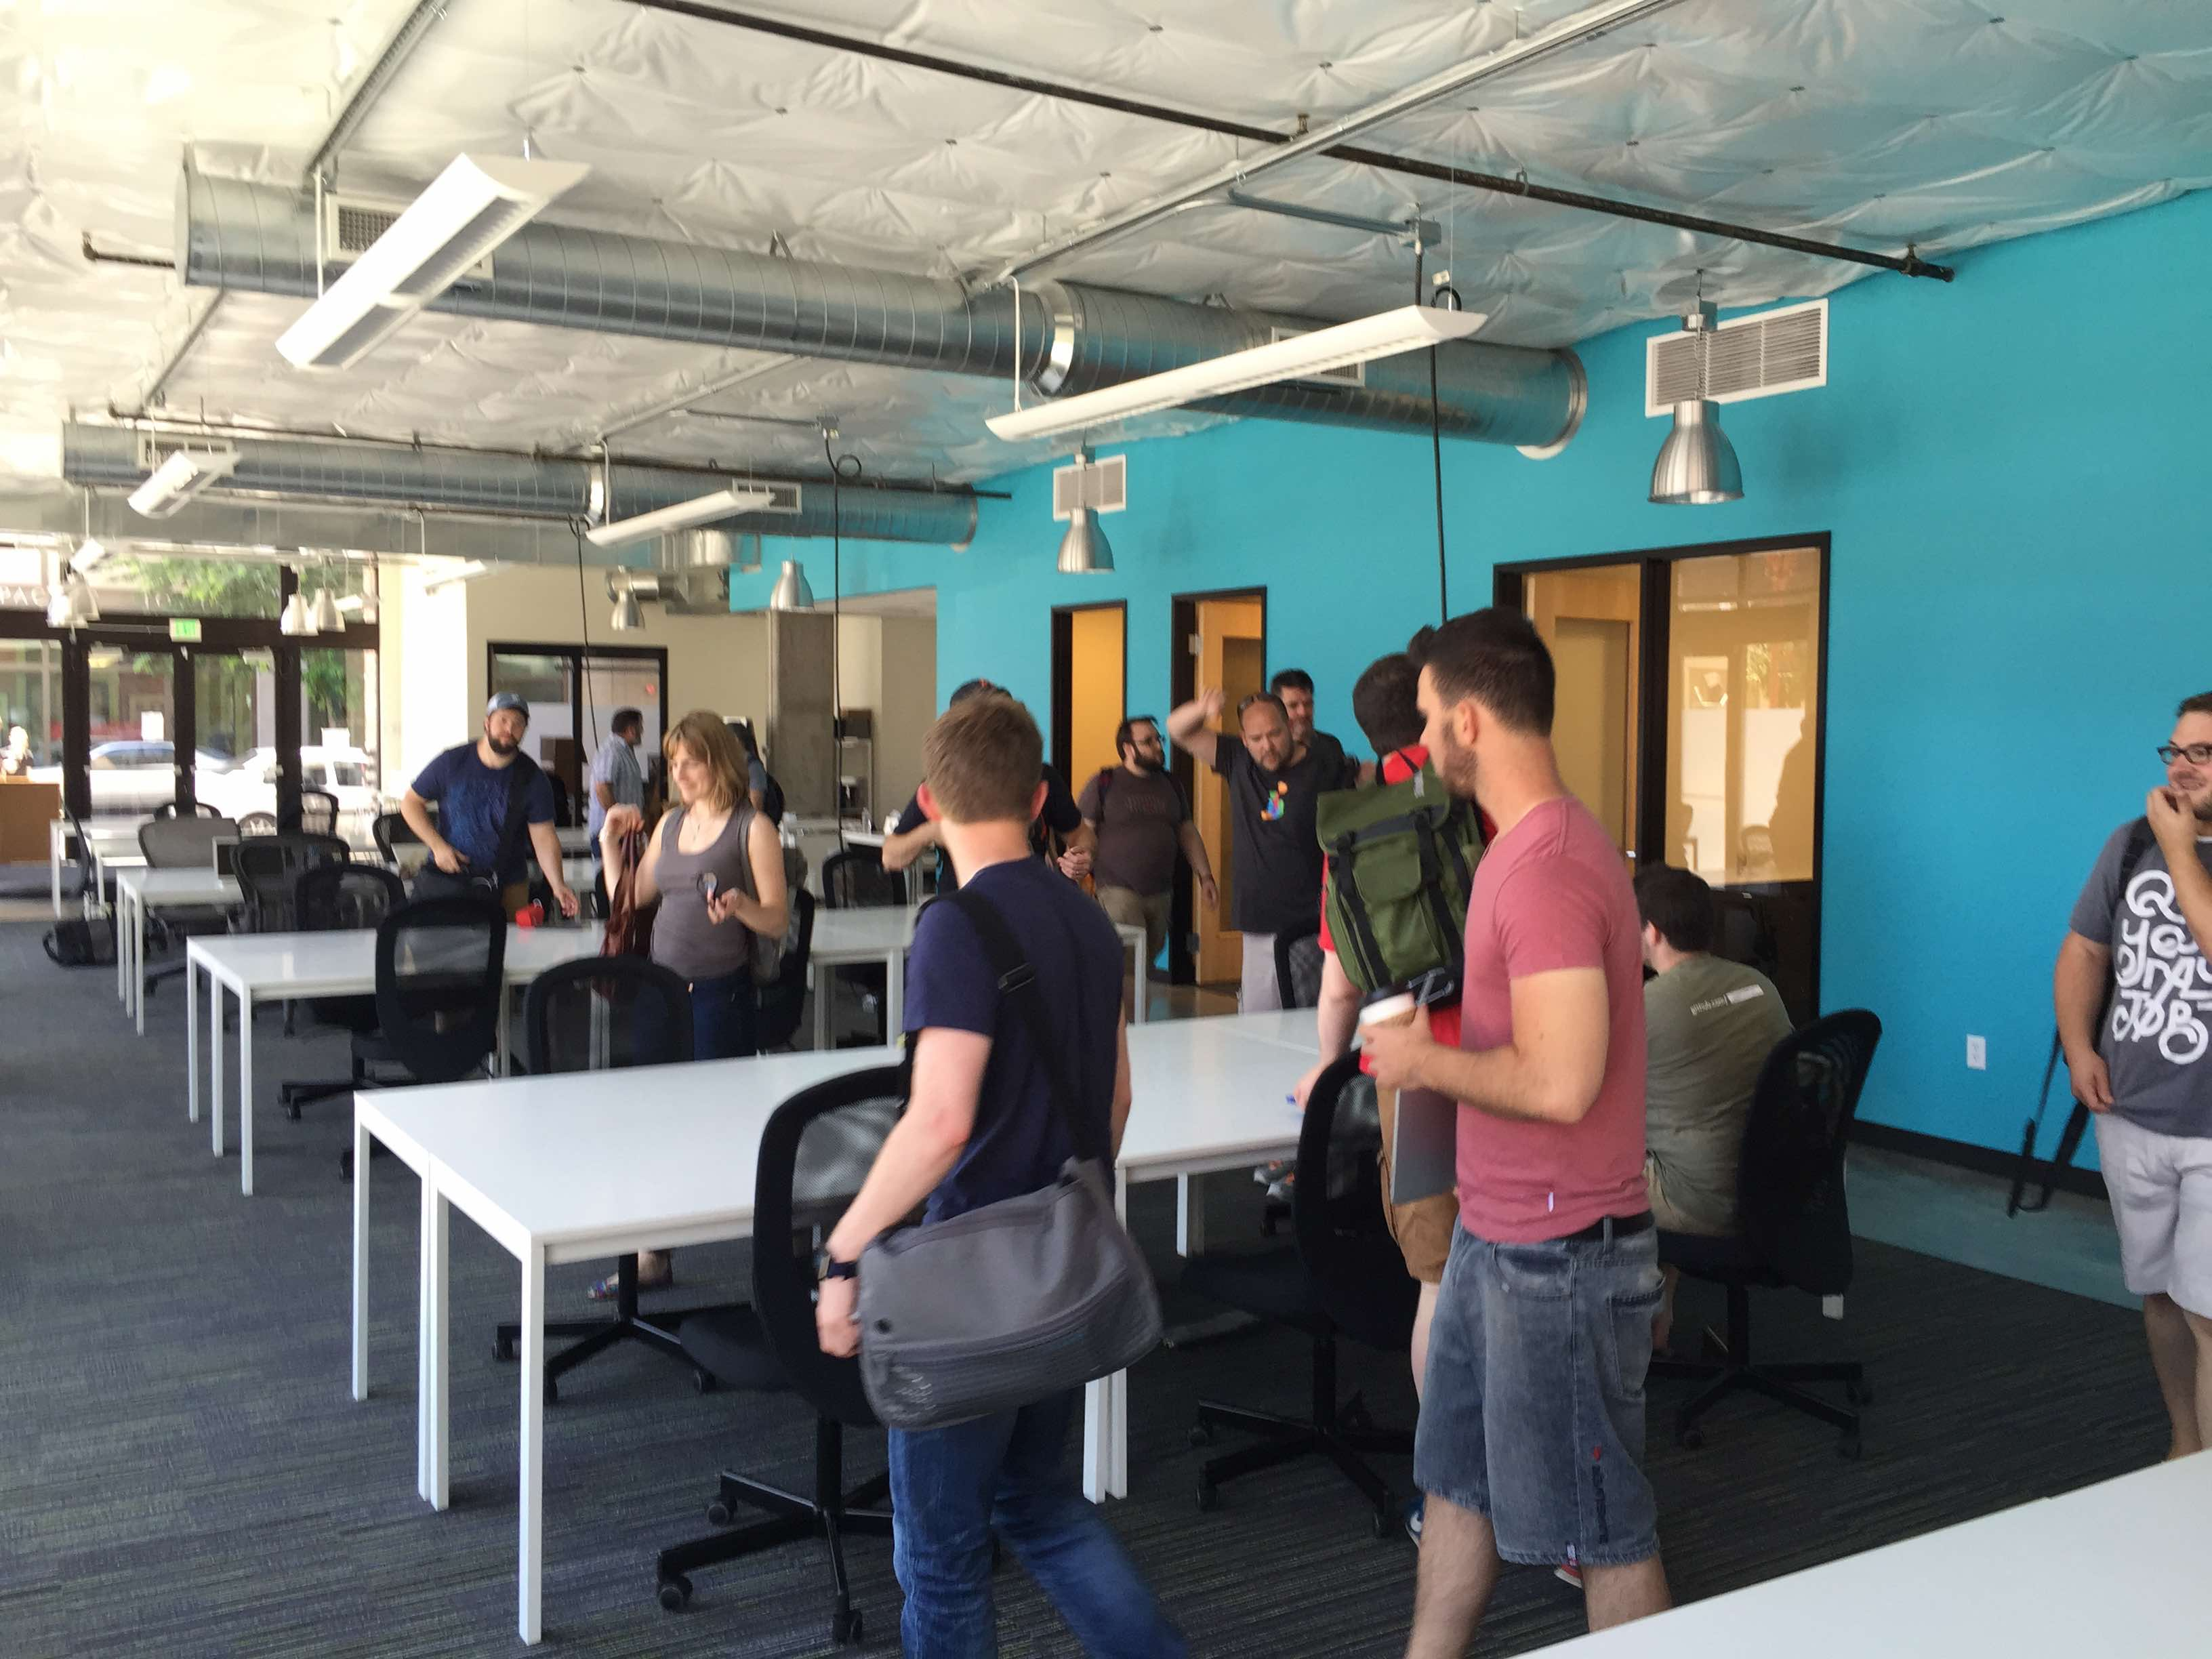 Composers arriving at the Oregon Storyboard co-working space